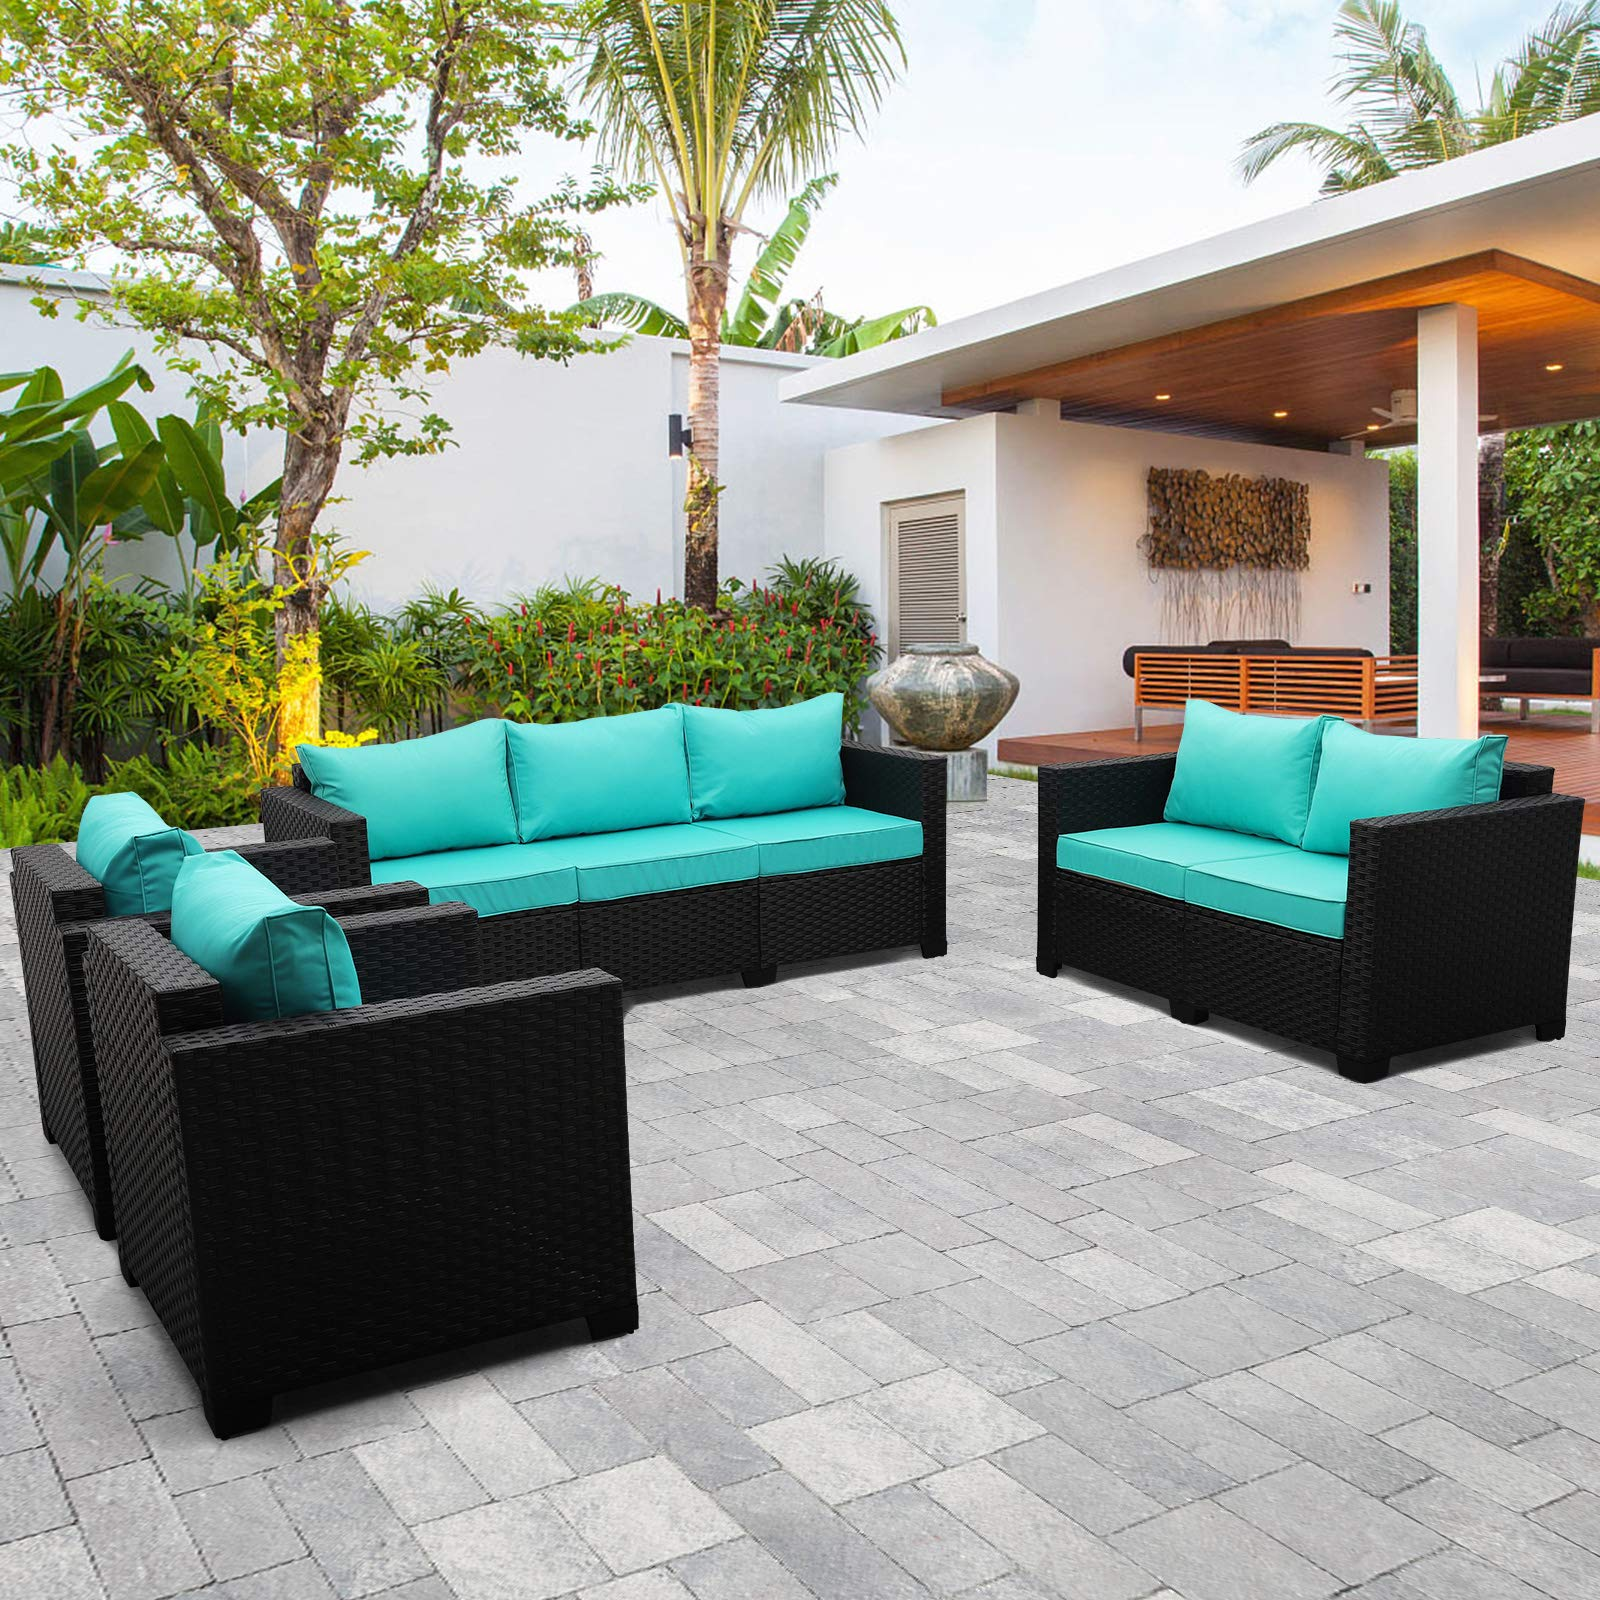 Outdoor Wicker Furniture Set 4 Pieces, PE Rattan Patio Sectional Sofa Couch Set with Turquoise Cushions and Furniture Covers